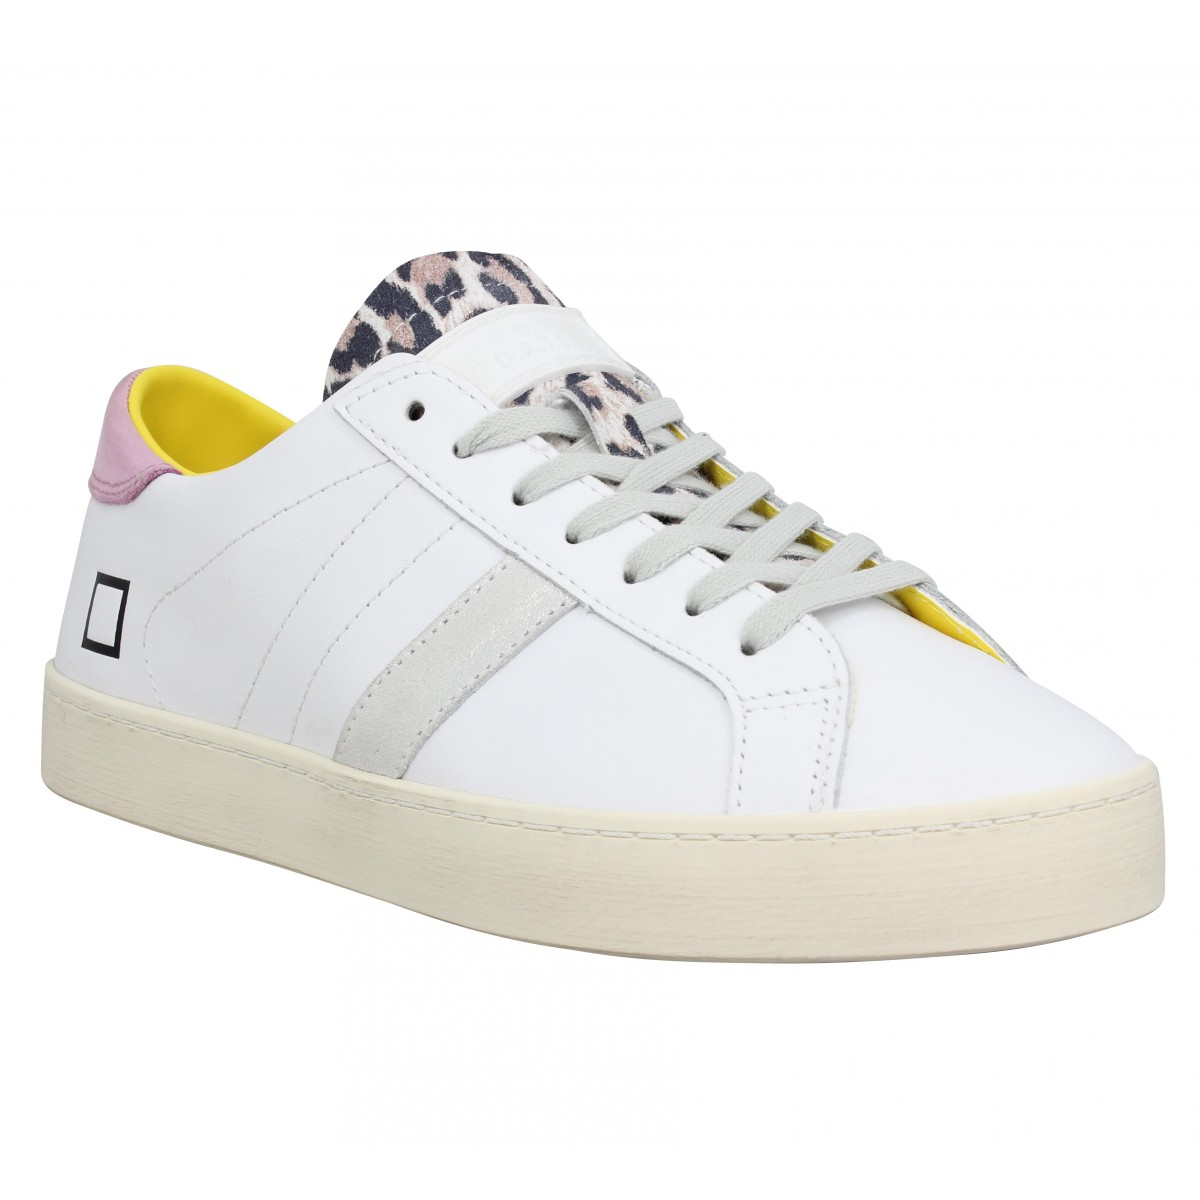 Baskets DATE SNEAKERS Hill Low calf Femme Blanc